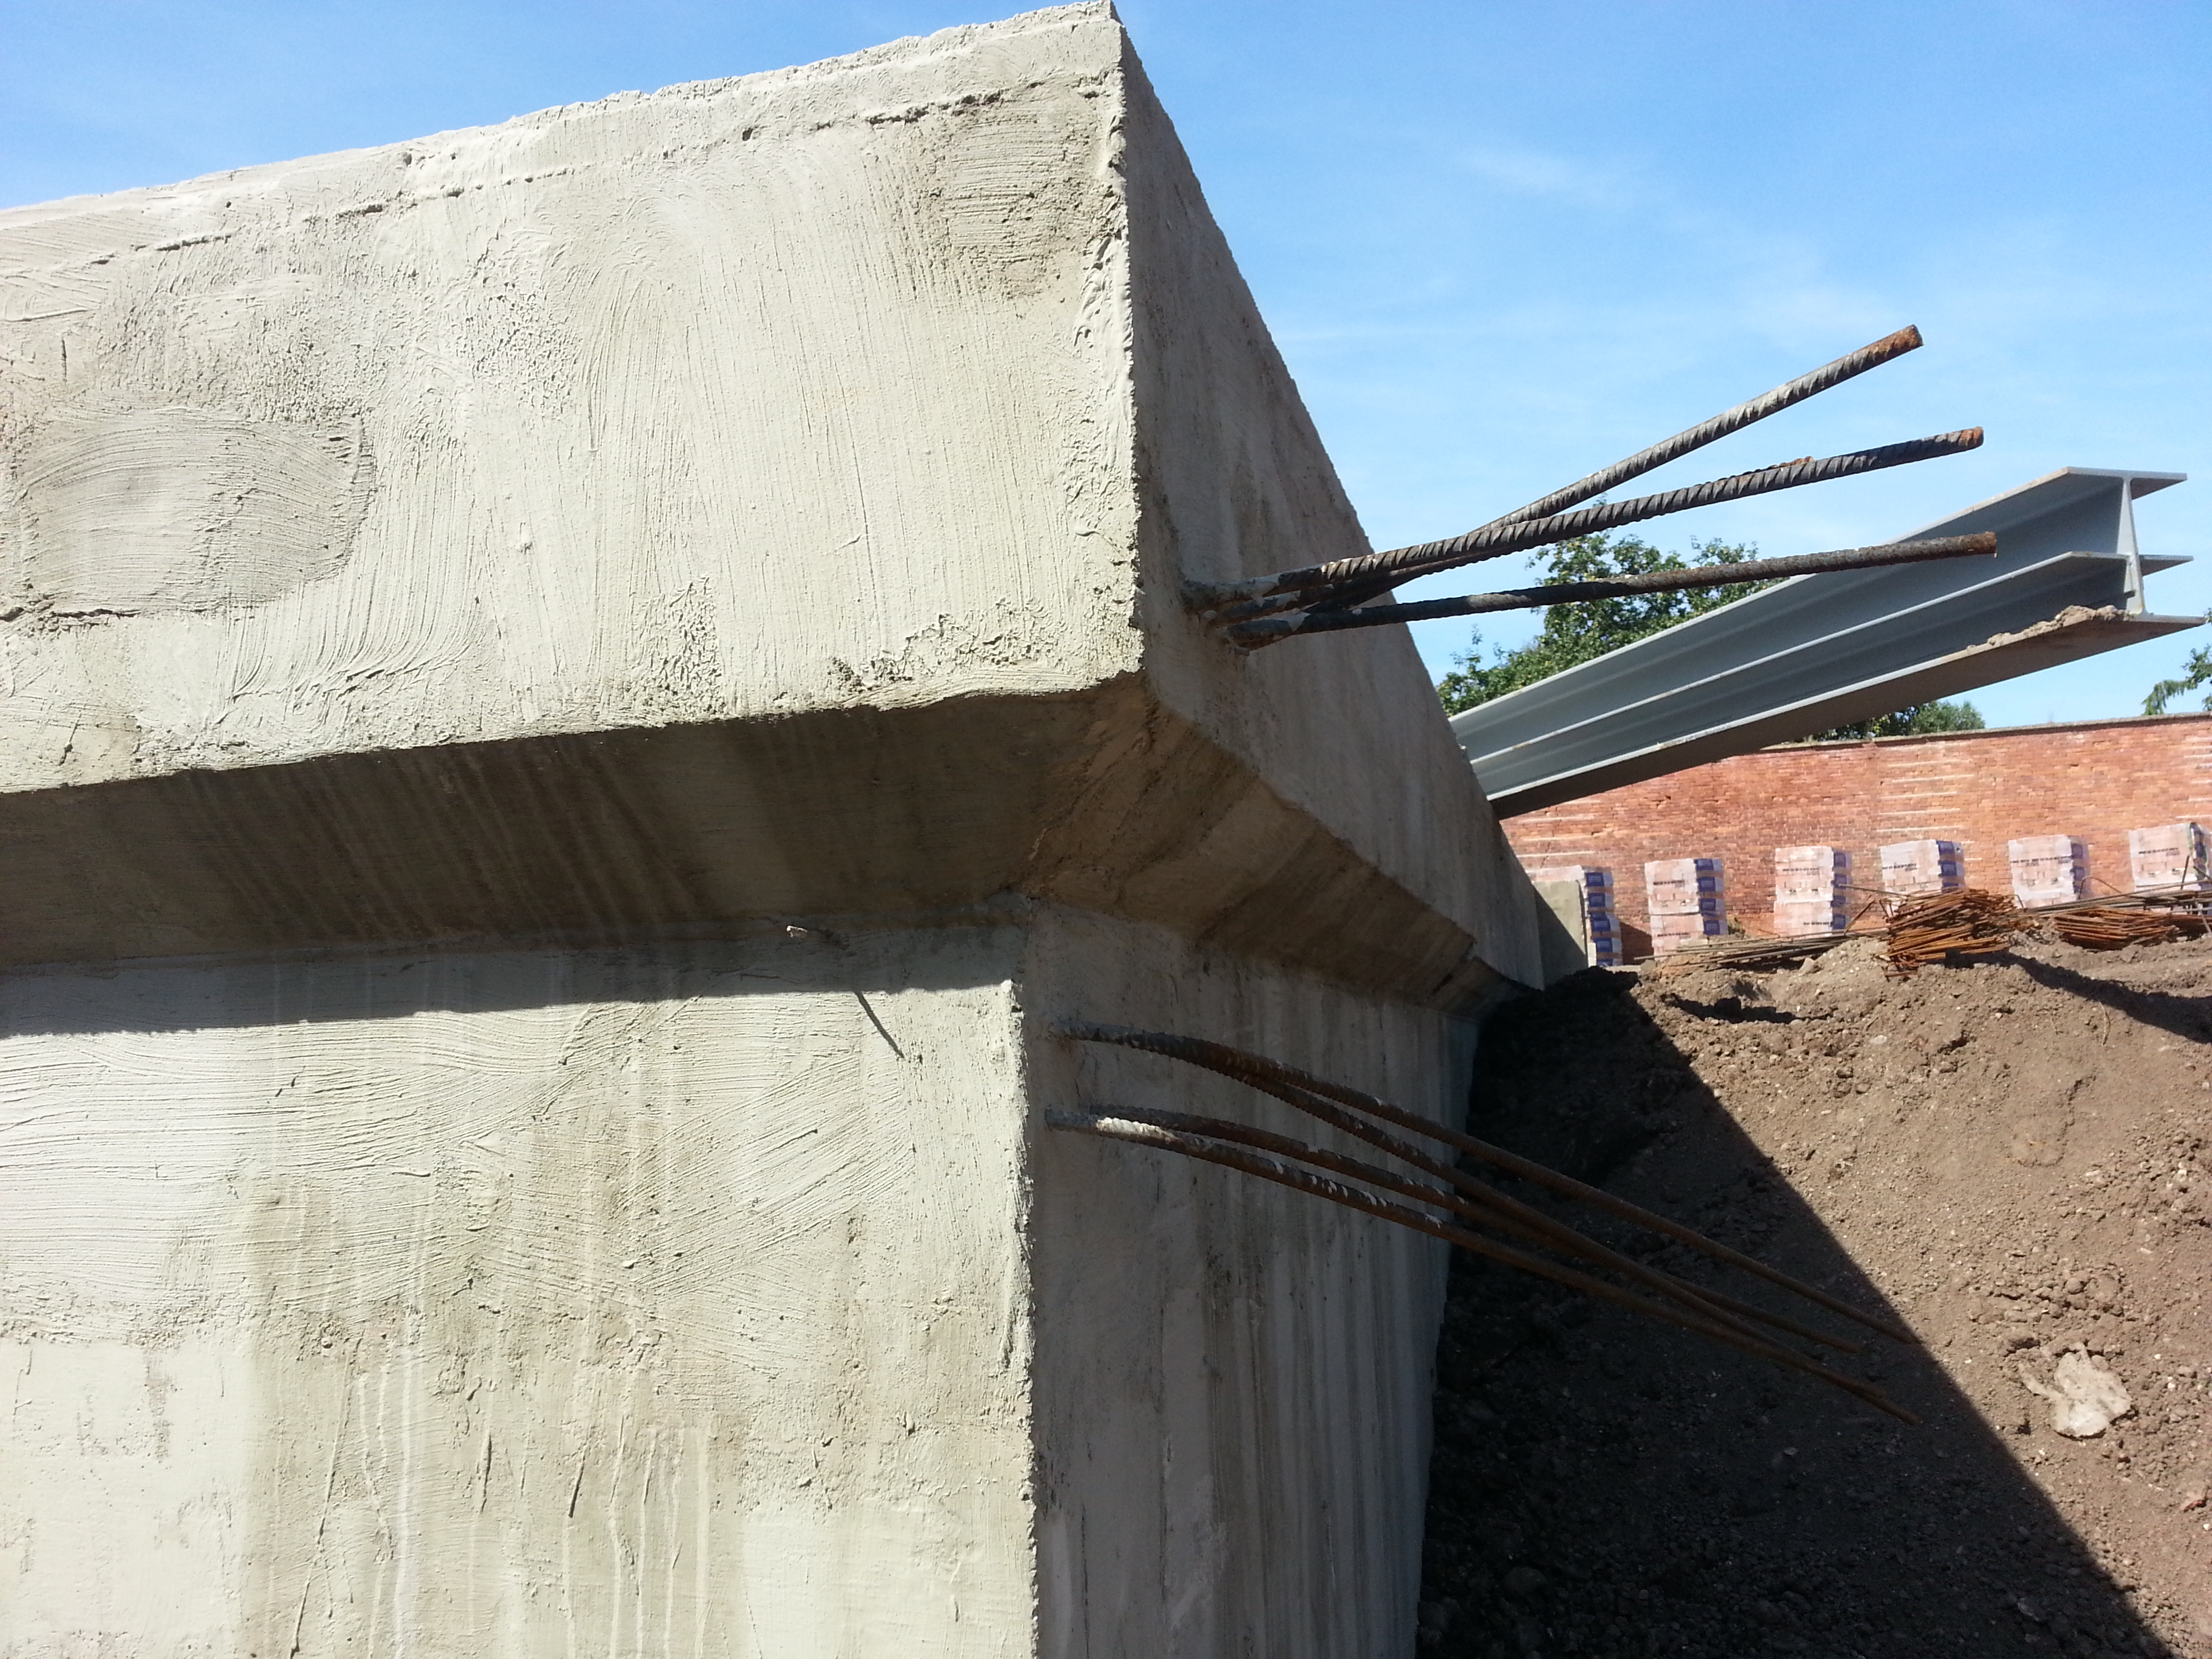 Head of wall stepped out to allow continuation of build above